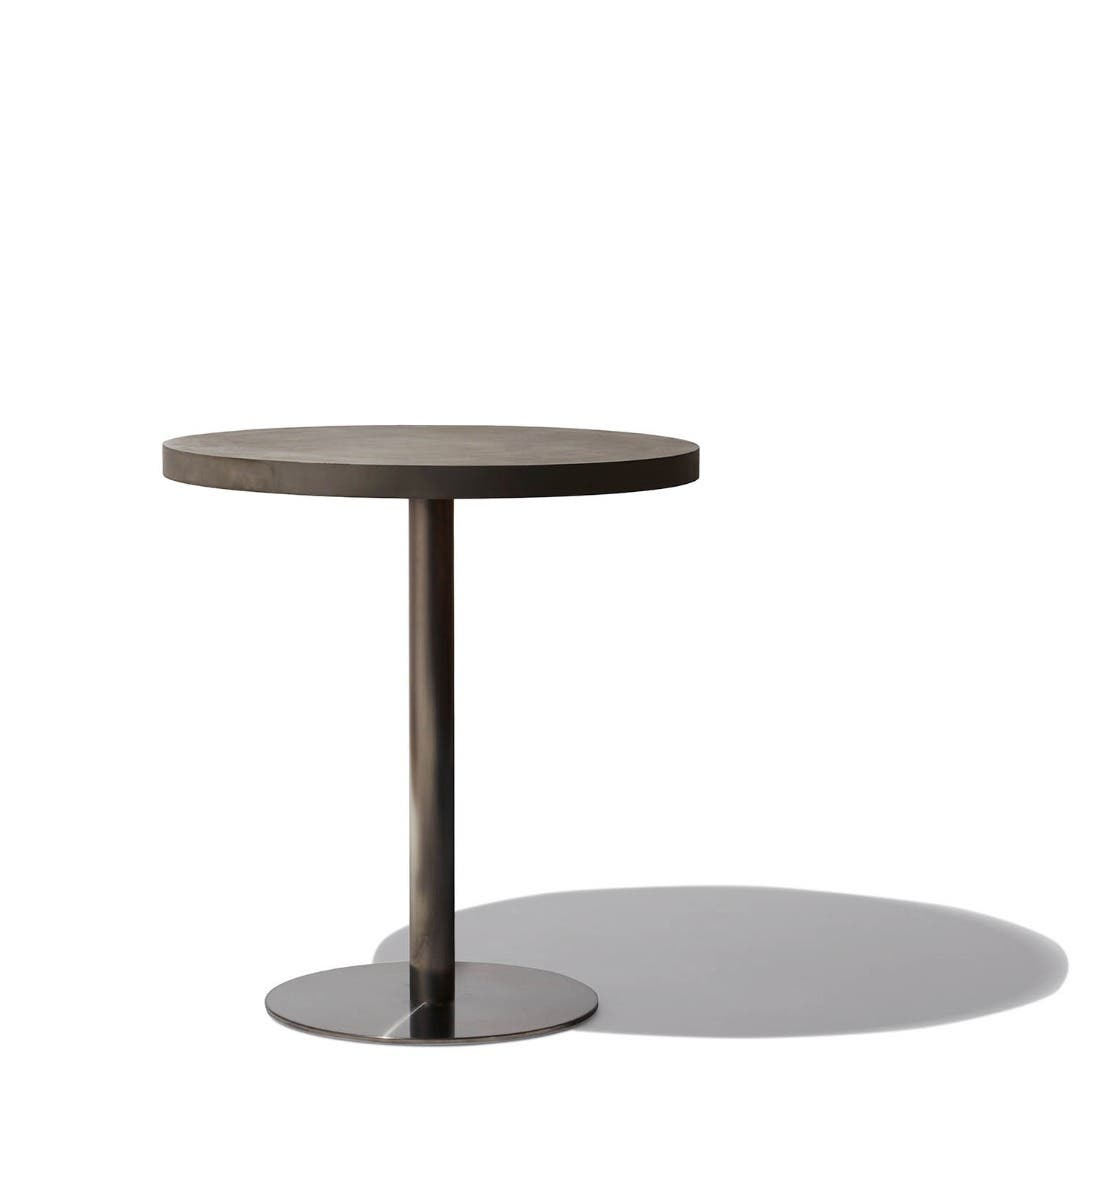 modern outdoor patio furniture – modern outdoor dining furniture - hauteville bistro table